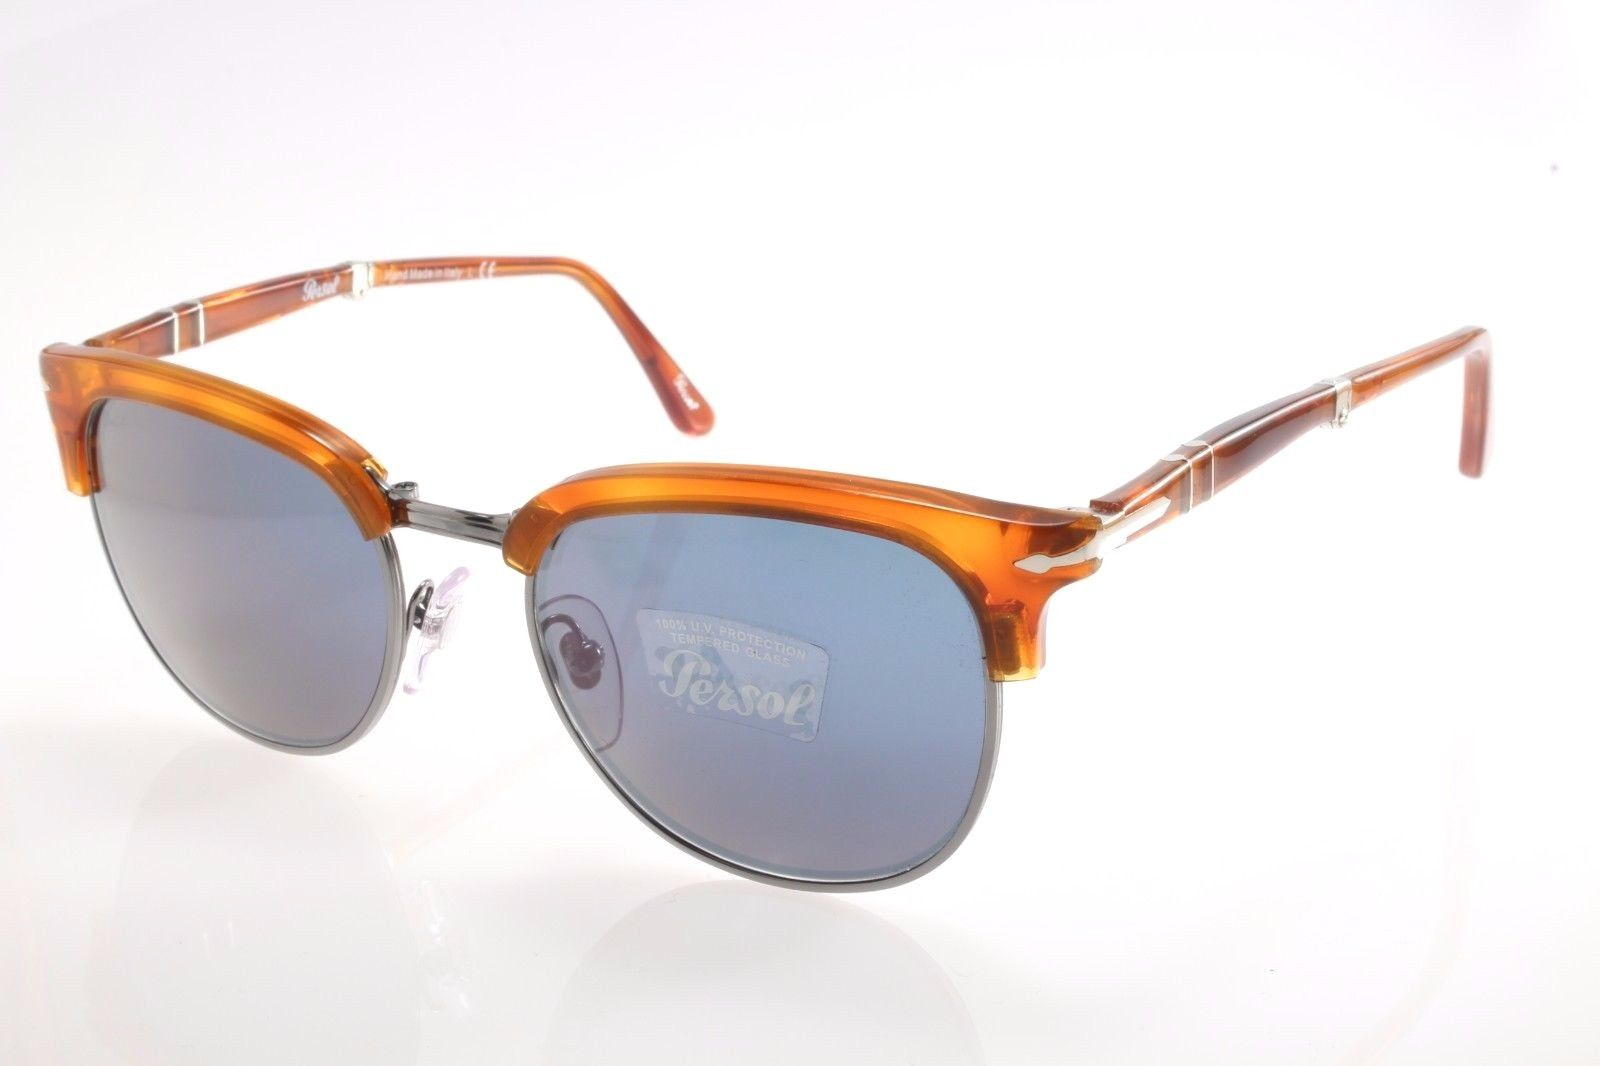 Persol 3132s/96/56